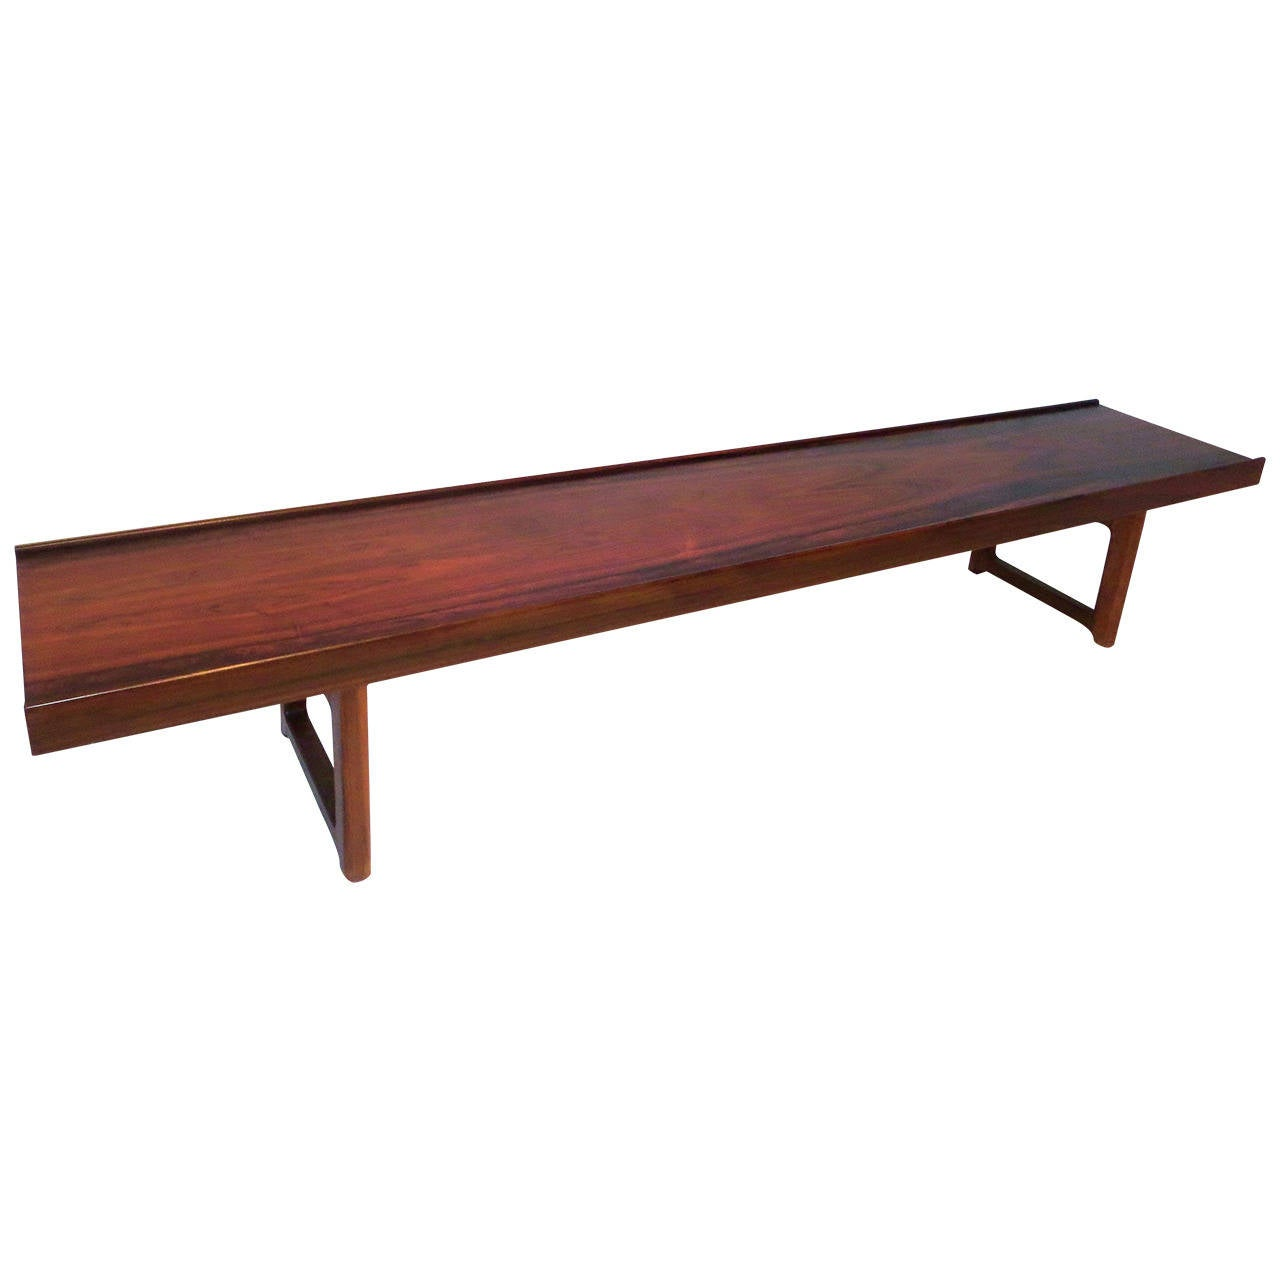 Long Low Profile Bench Or Coffee Table In Rosewood Torbj Rn Afdal For Bruksbo At 1stdibs